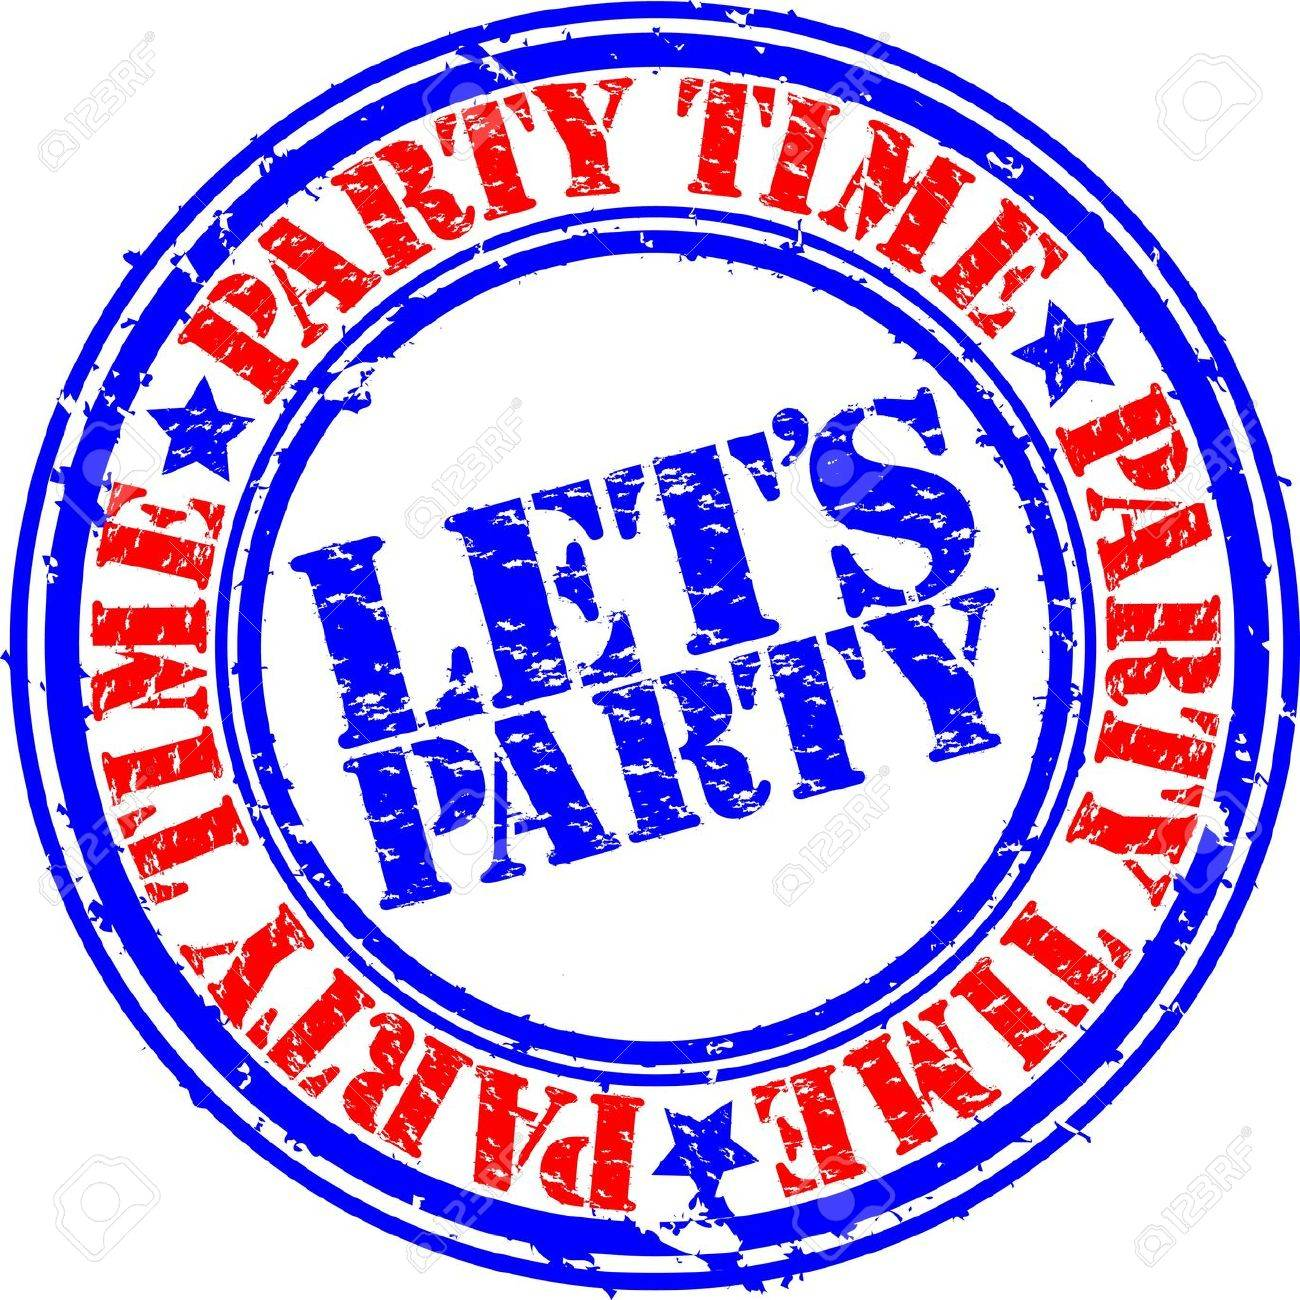 Grunge lets party rubber stamp, vector illustration Stock Vector - 13707626